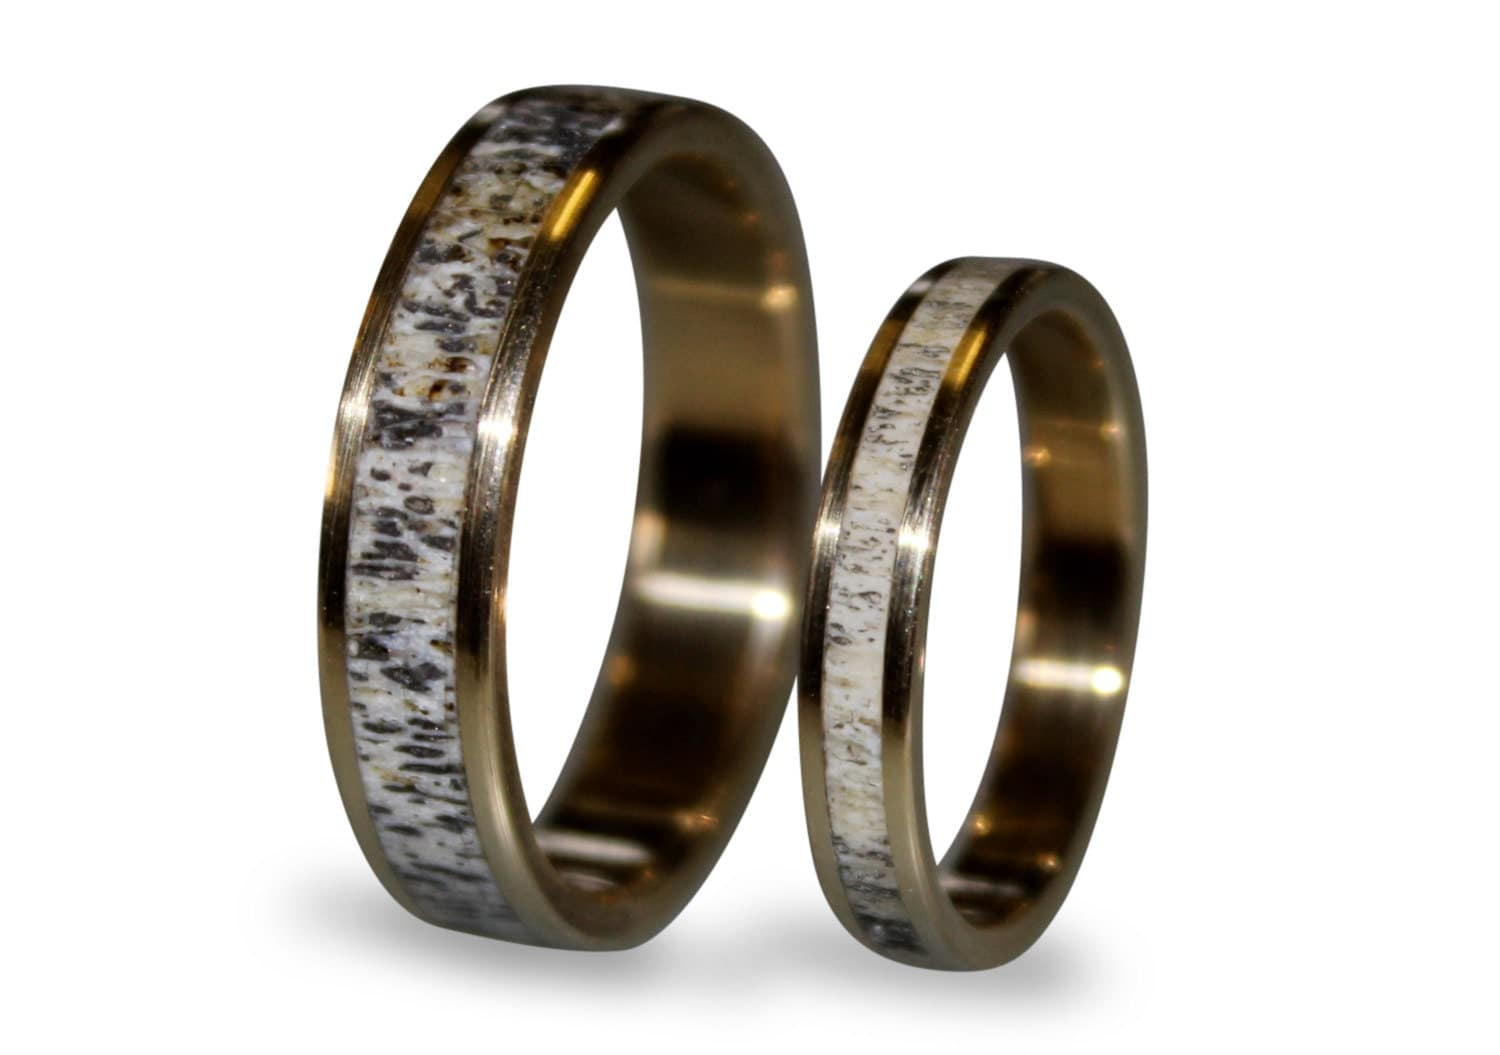 18k Gold Wedding Band Set With Deer Antler Antler Ring Inlaid